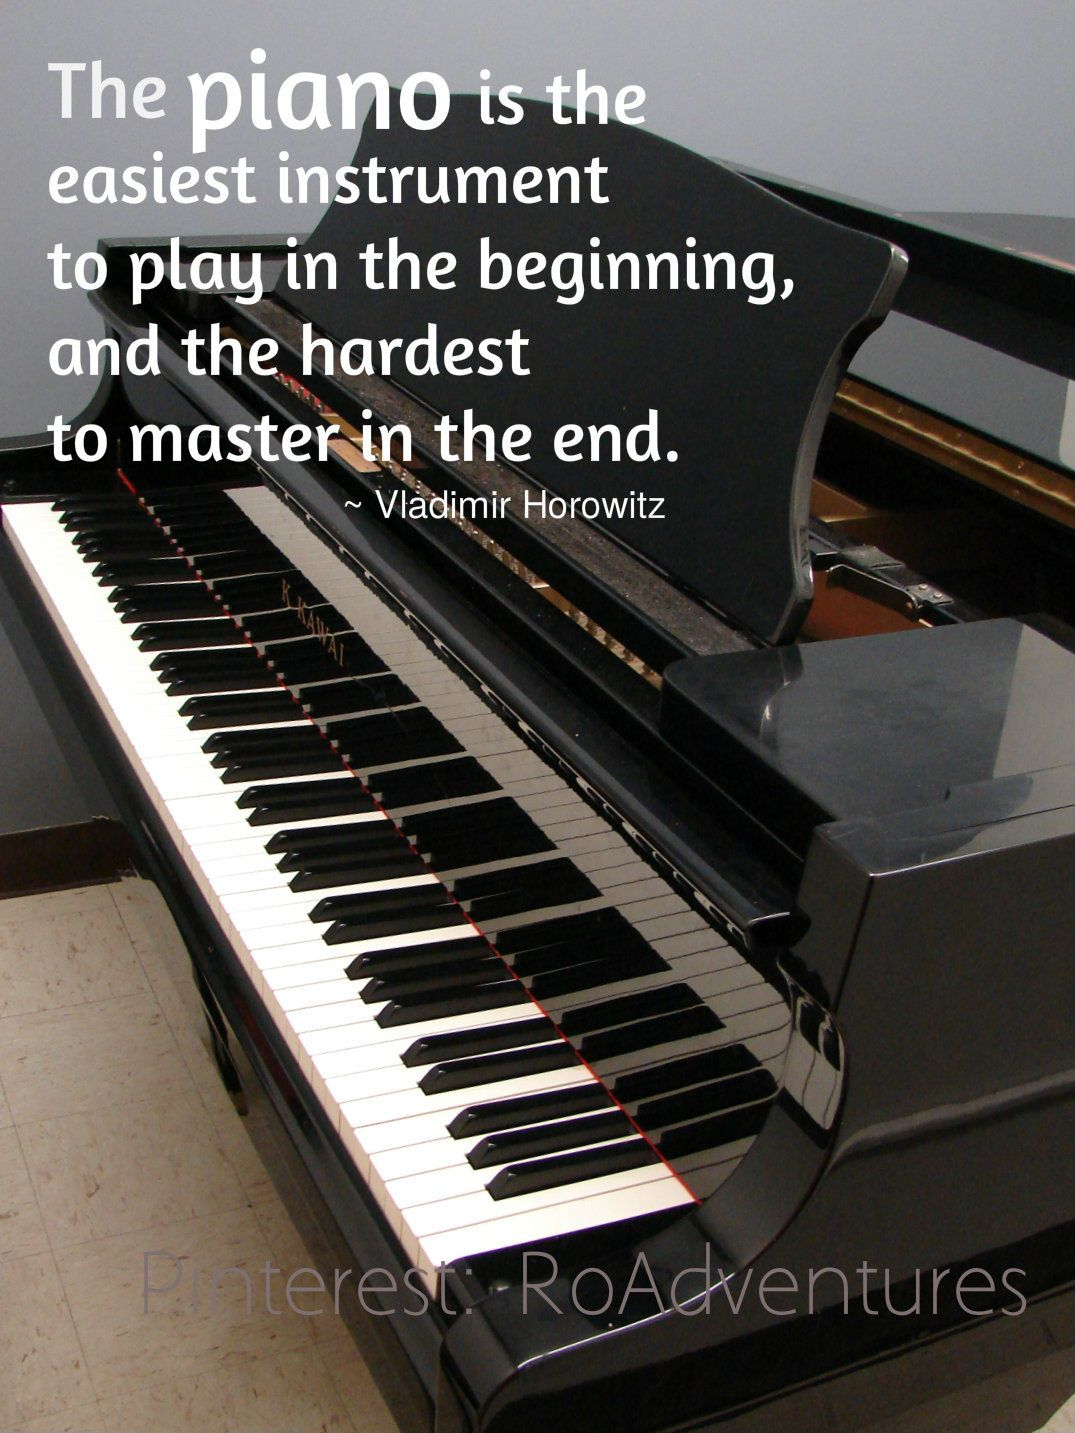 the piano is the easiest instrument to play in the beginning, and